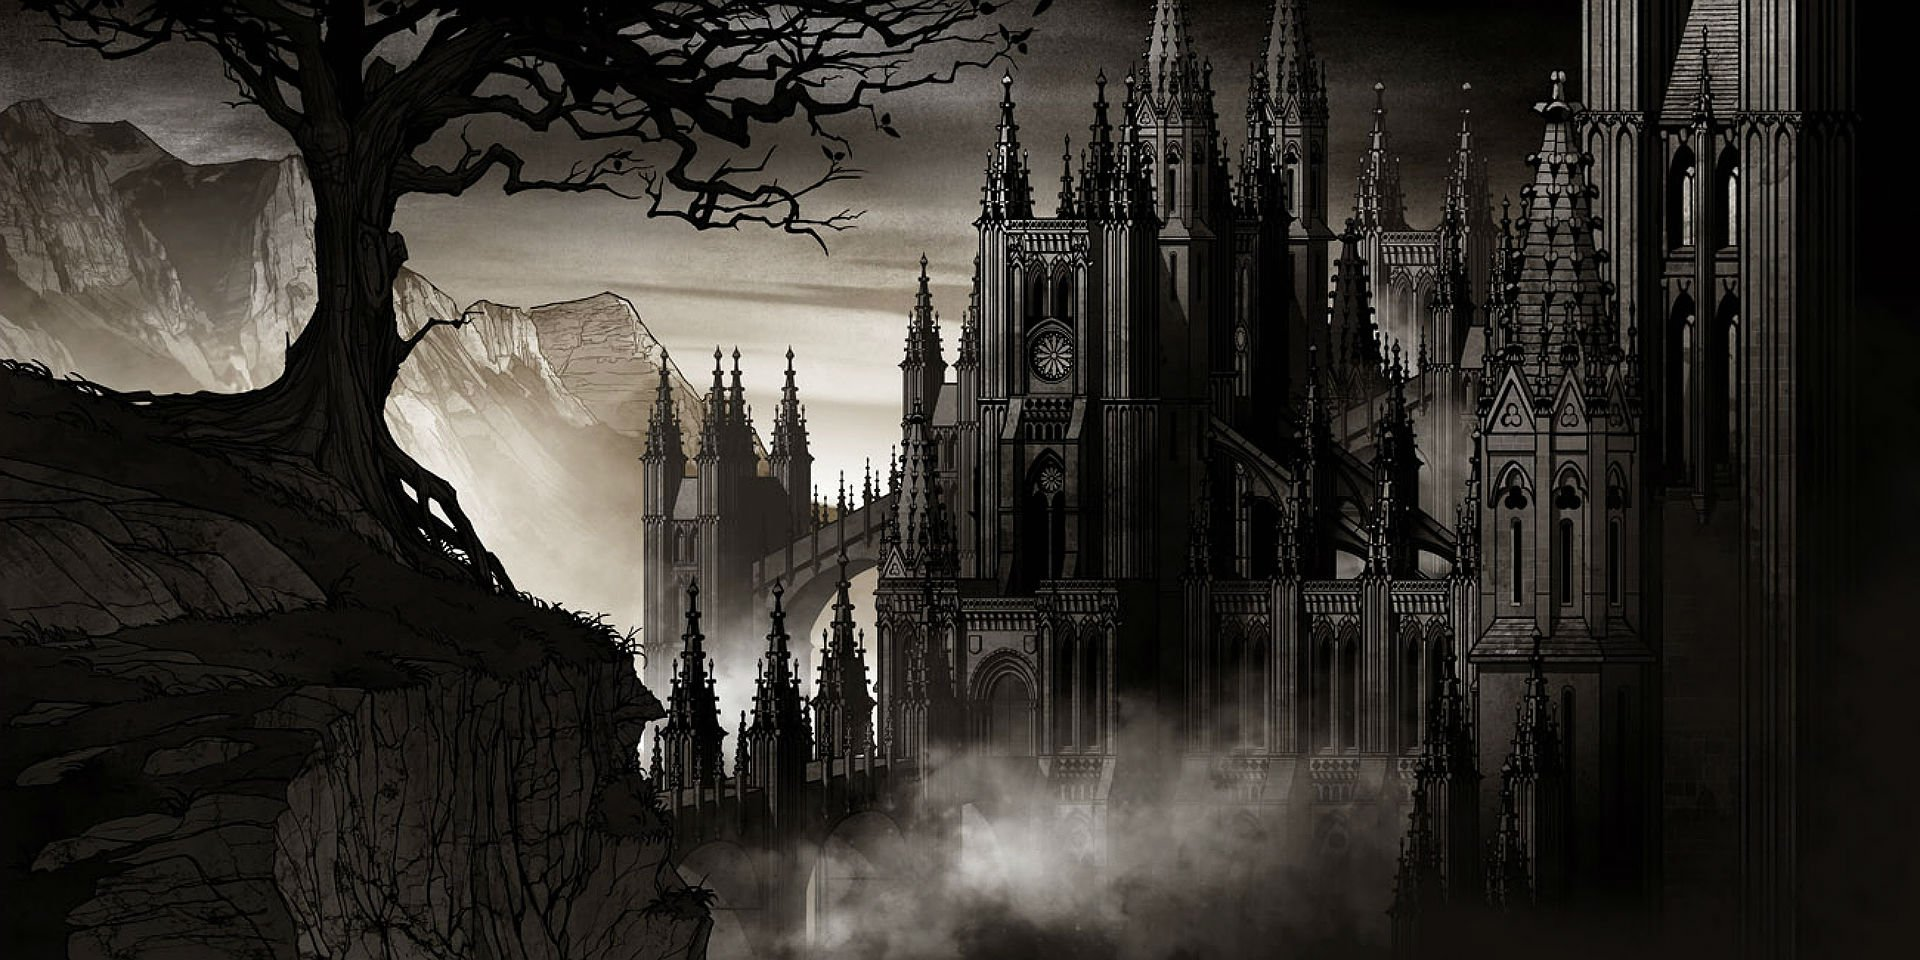 Hd Puzzle Wallpaper Dark Castle Backgrounds 35 Wallpapers Adorable Wallpapers